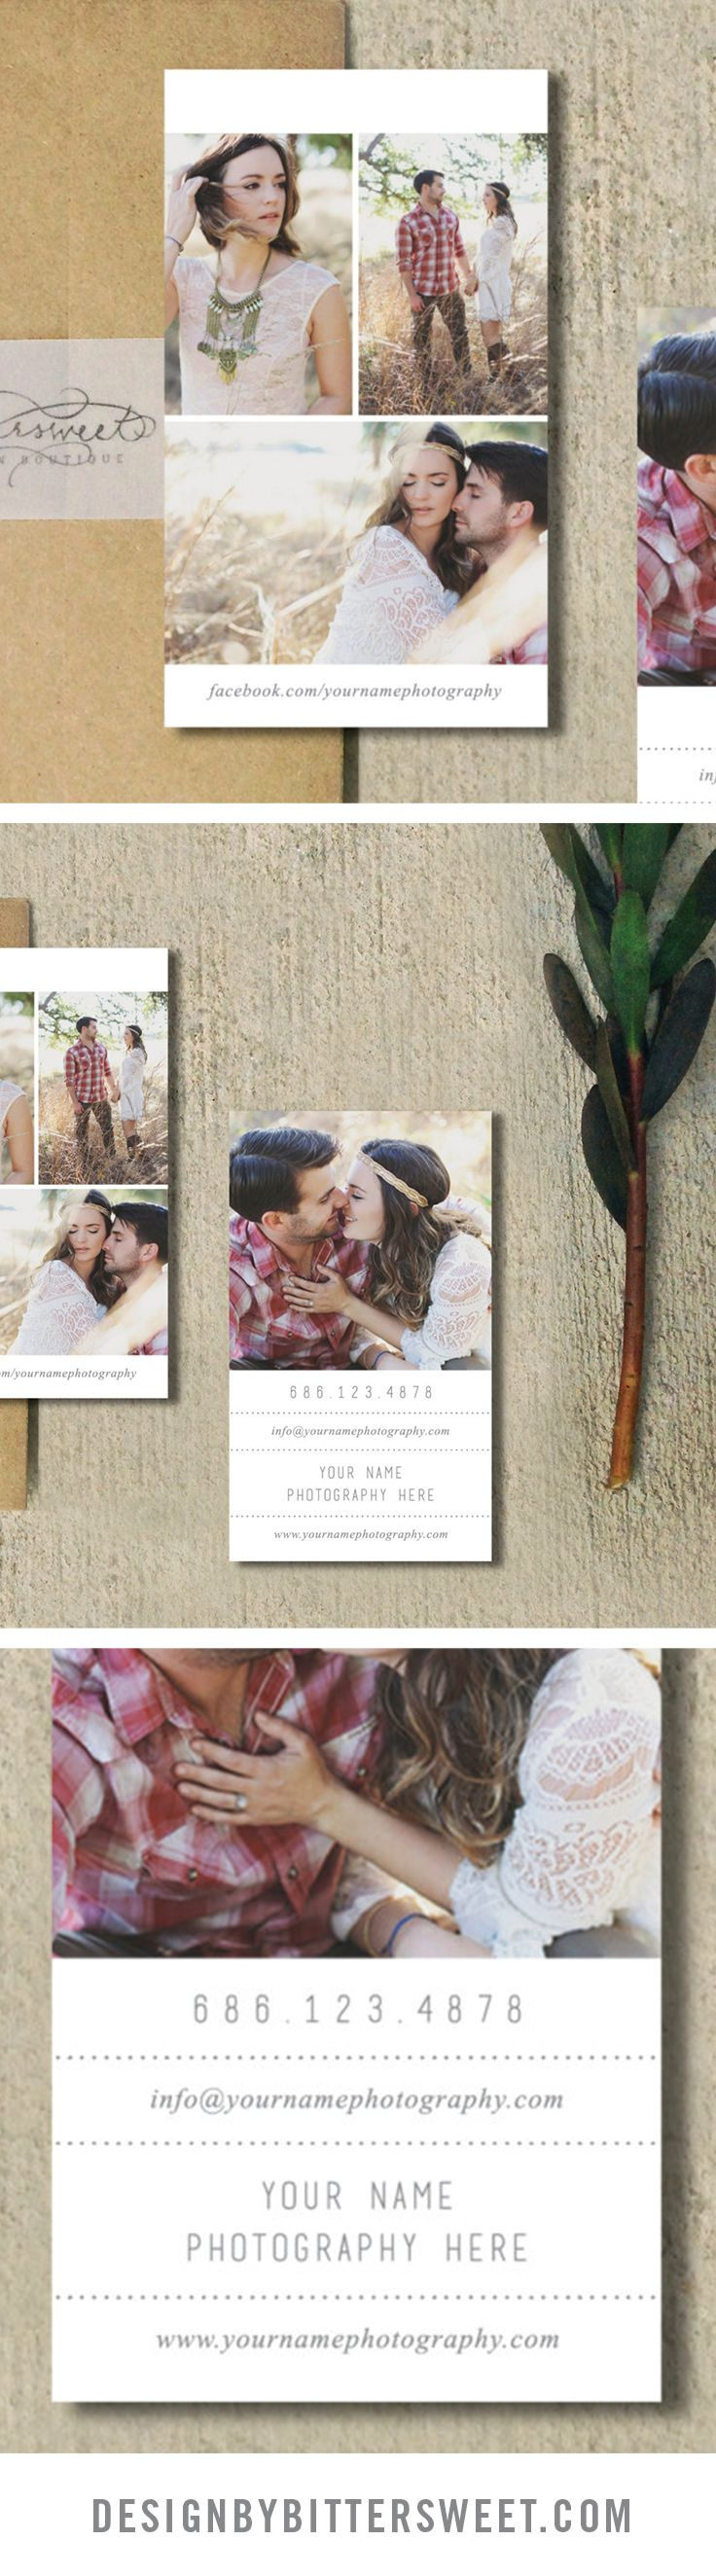 best 25 business card templates ideas on pinterest